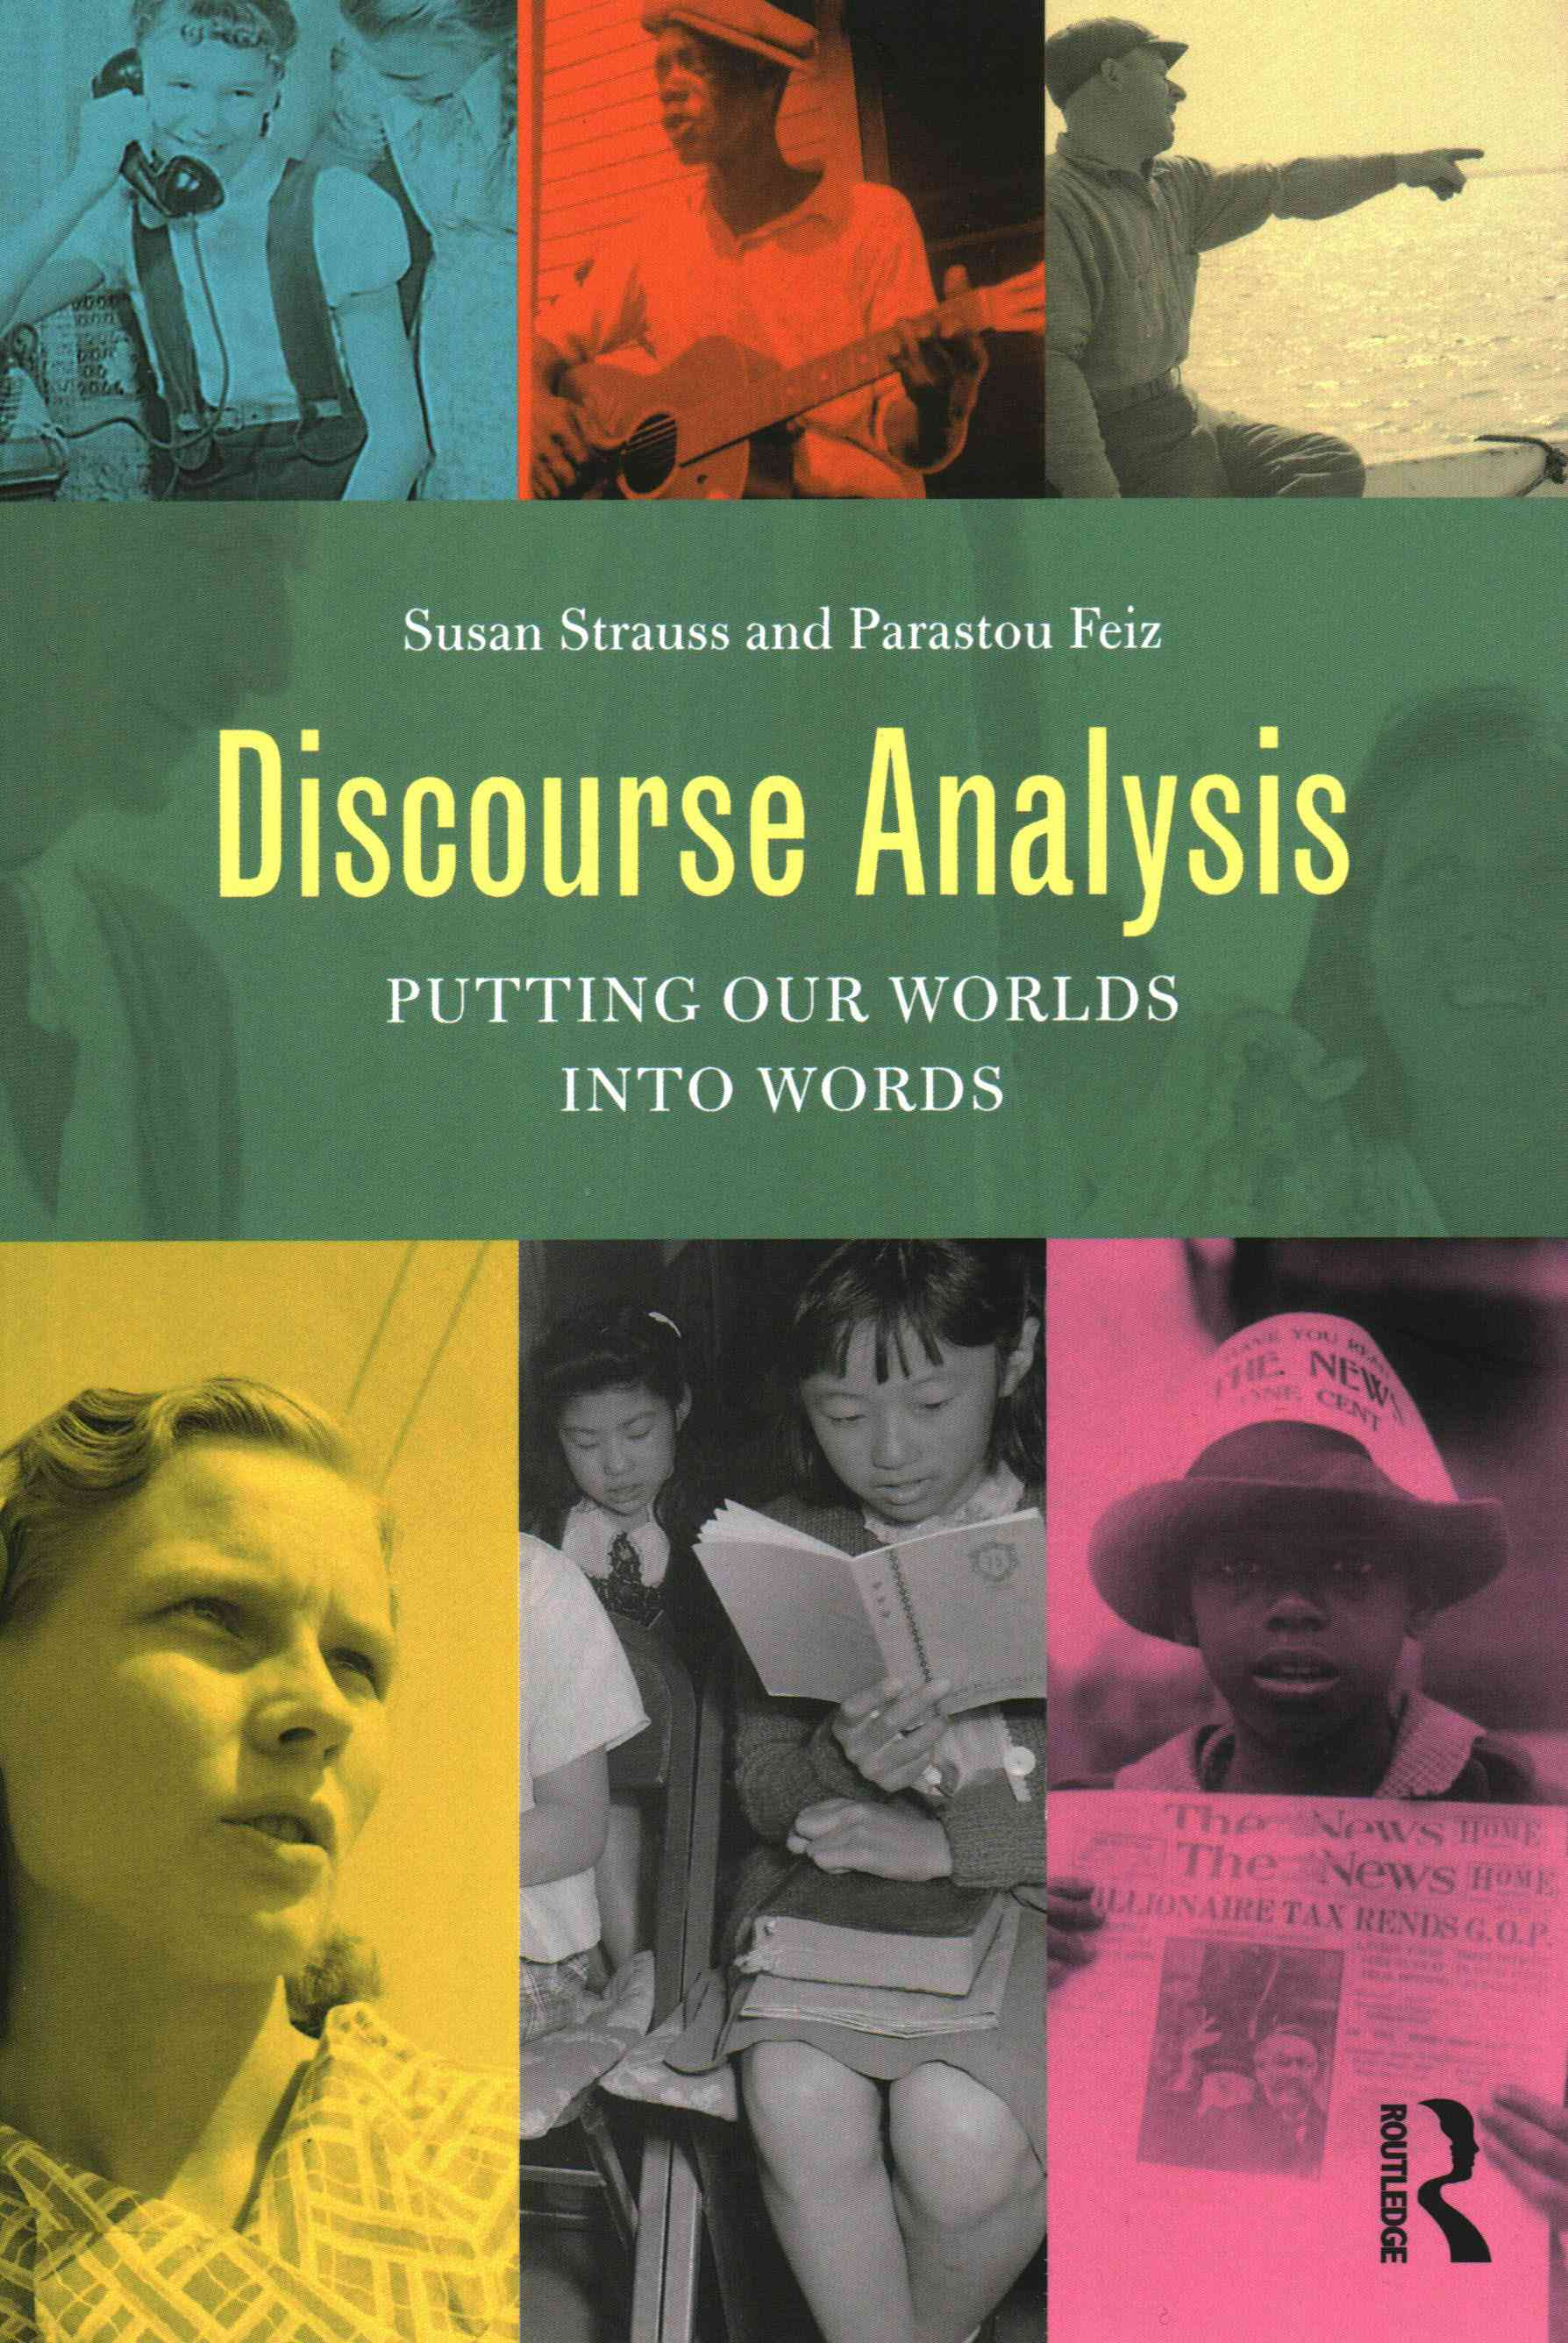 Discourse Analysis By Strauss, Susan/ Feiz, Parastou